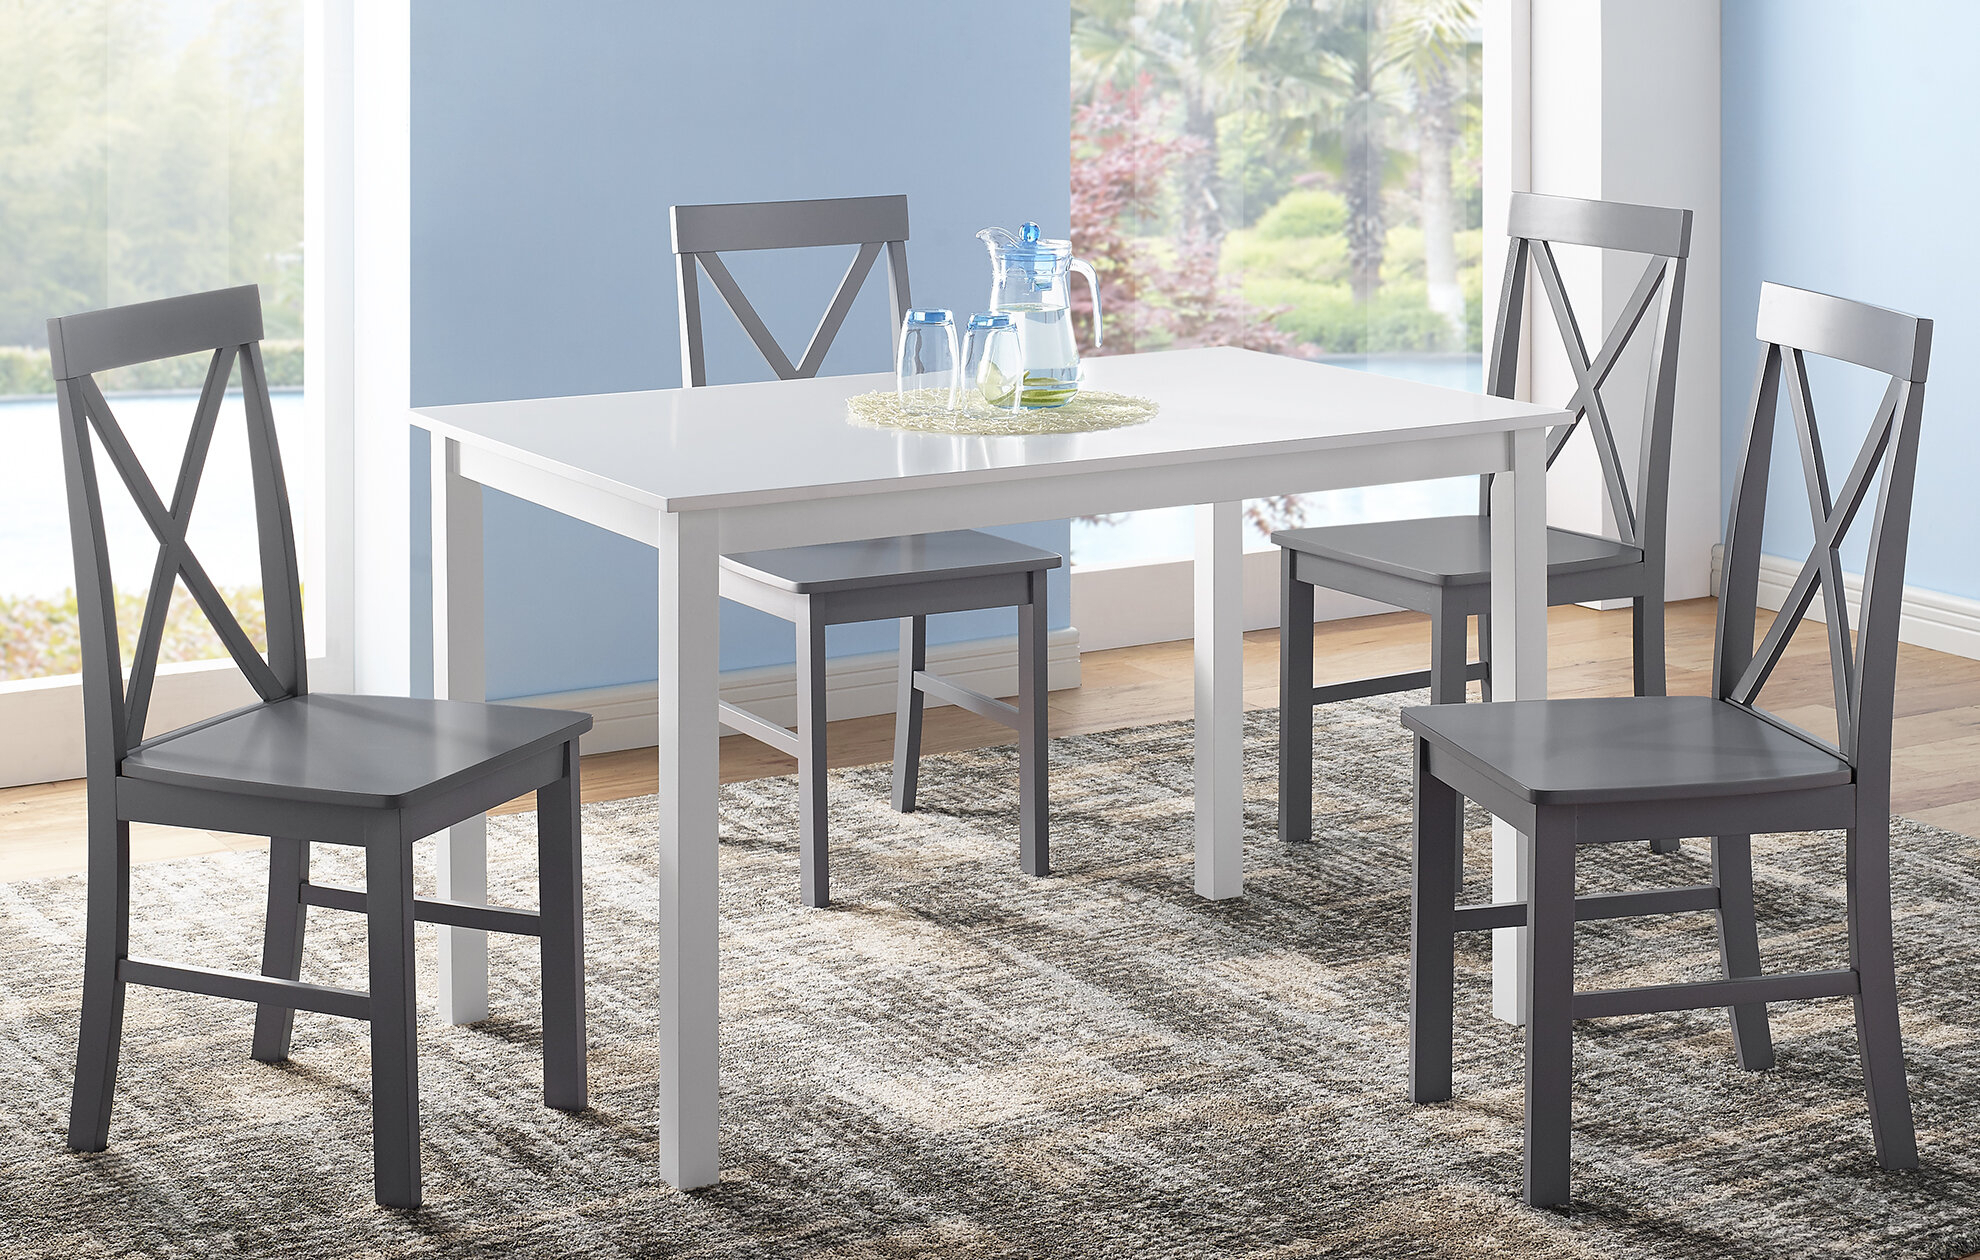 Rarick 5 Piece Solid Wood Dining Set With Best And Newest Rarick 5 Piece Solid Wood Dining Sets (Set Of 5) (Photo 1 of 20)